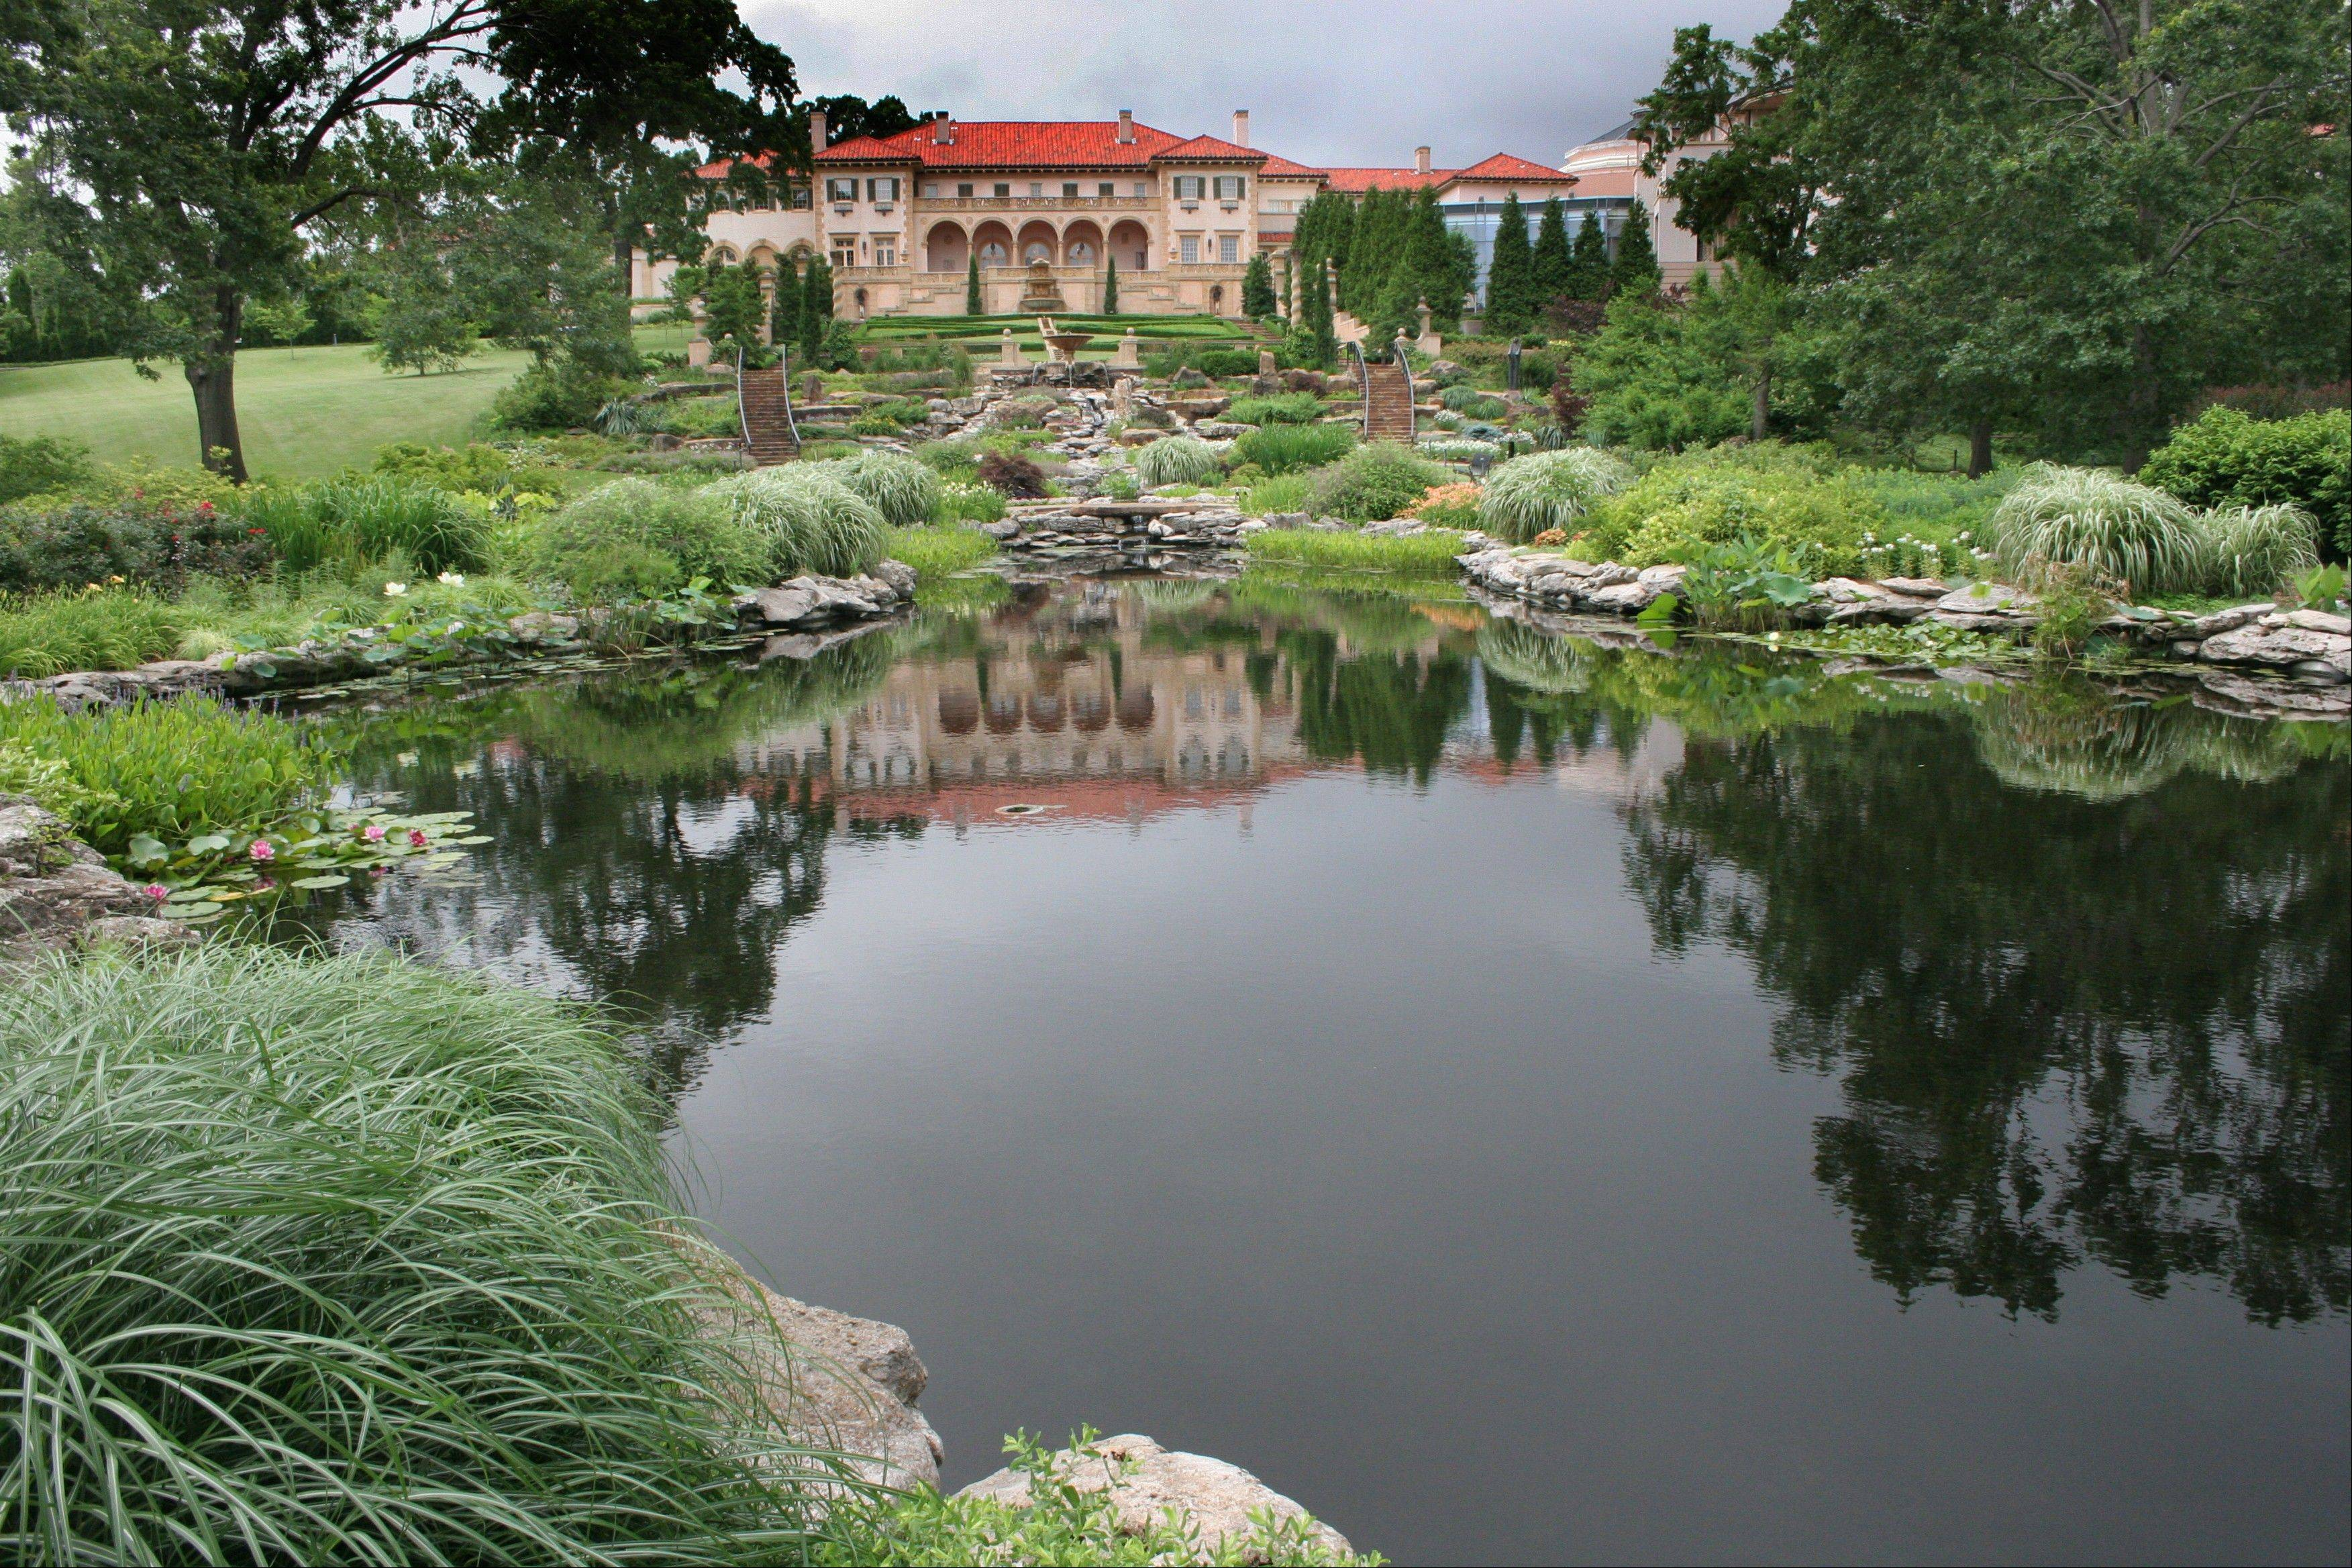 The Philbrook Museum of Art's collection of fine art is housed in what was once the 72-room private villa of oilman Waite Phillips' family. The grounds include a magnificent 23-acre garden.